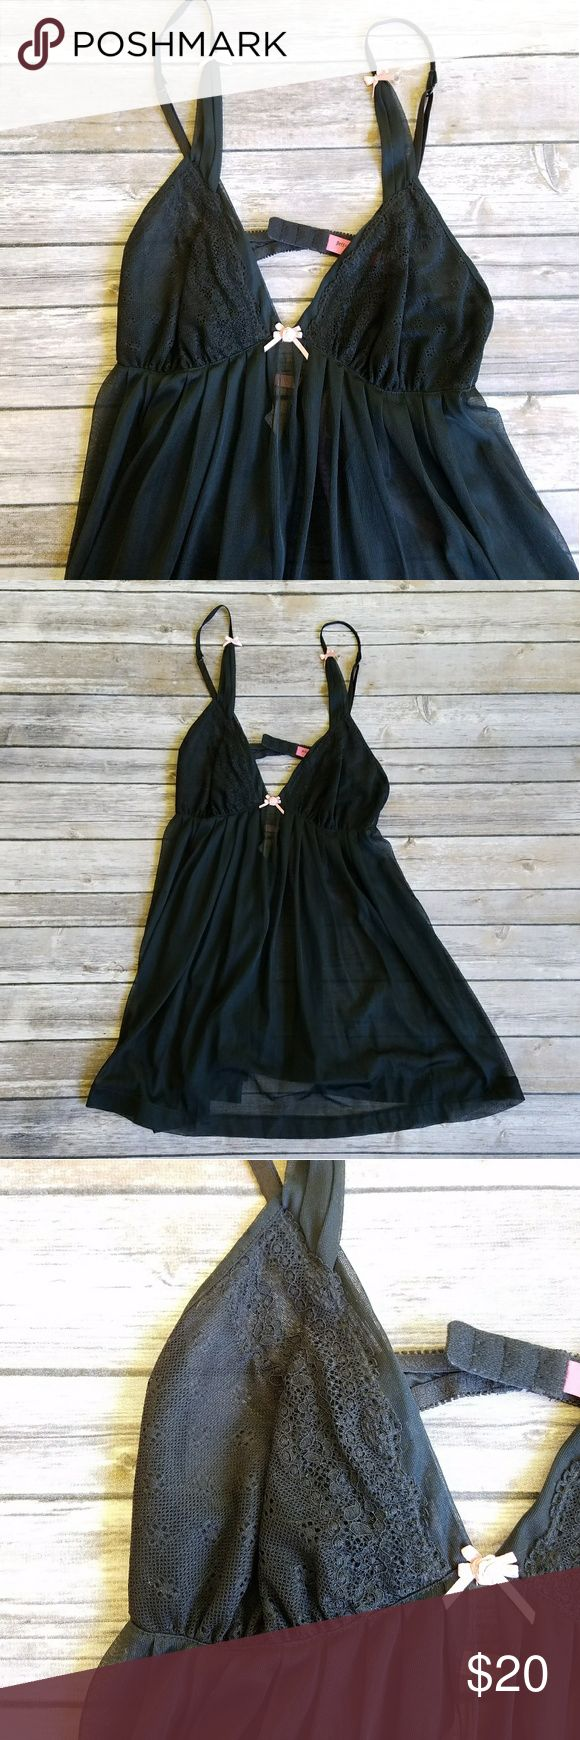 Betsey Johnson women's teddy NWOT black sheer Betsey Johnson night teddy. Adjustable straps with hook and eye back closure. Betsey Johnson Intimates & Sleepwear